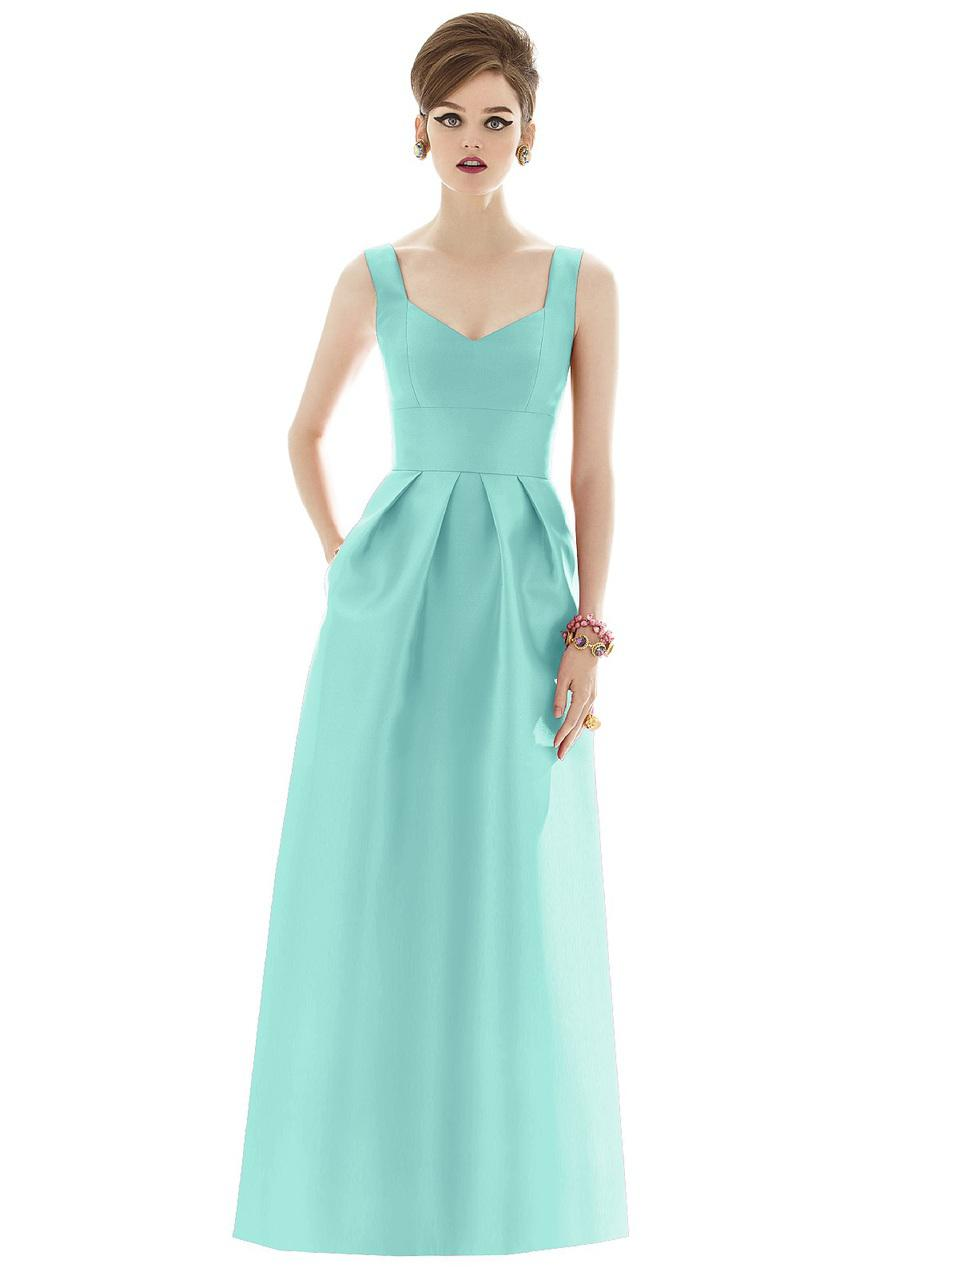 Colorful Jersey Knit Bridesmaid Dresses Image - All Wedding Dresses ...